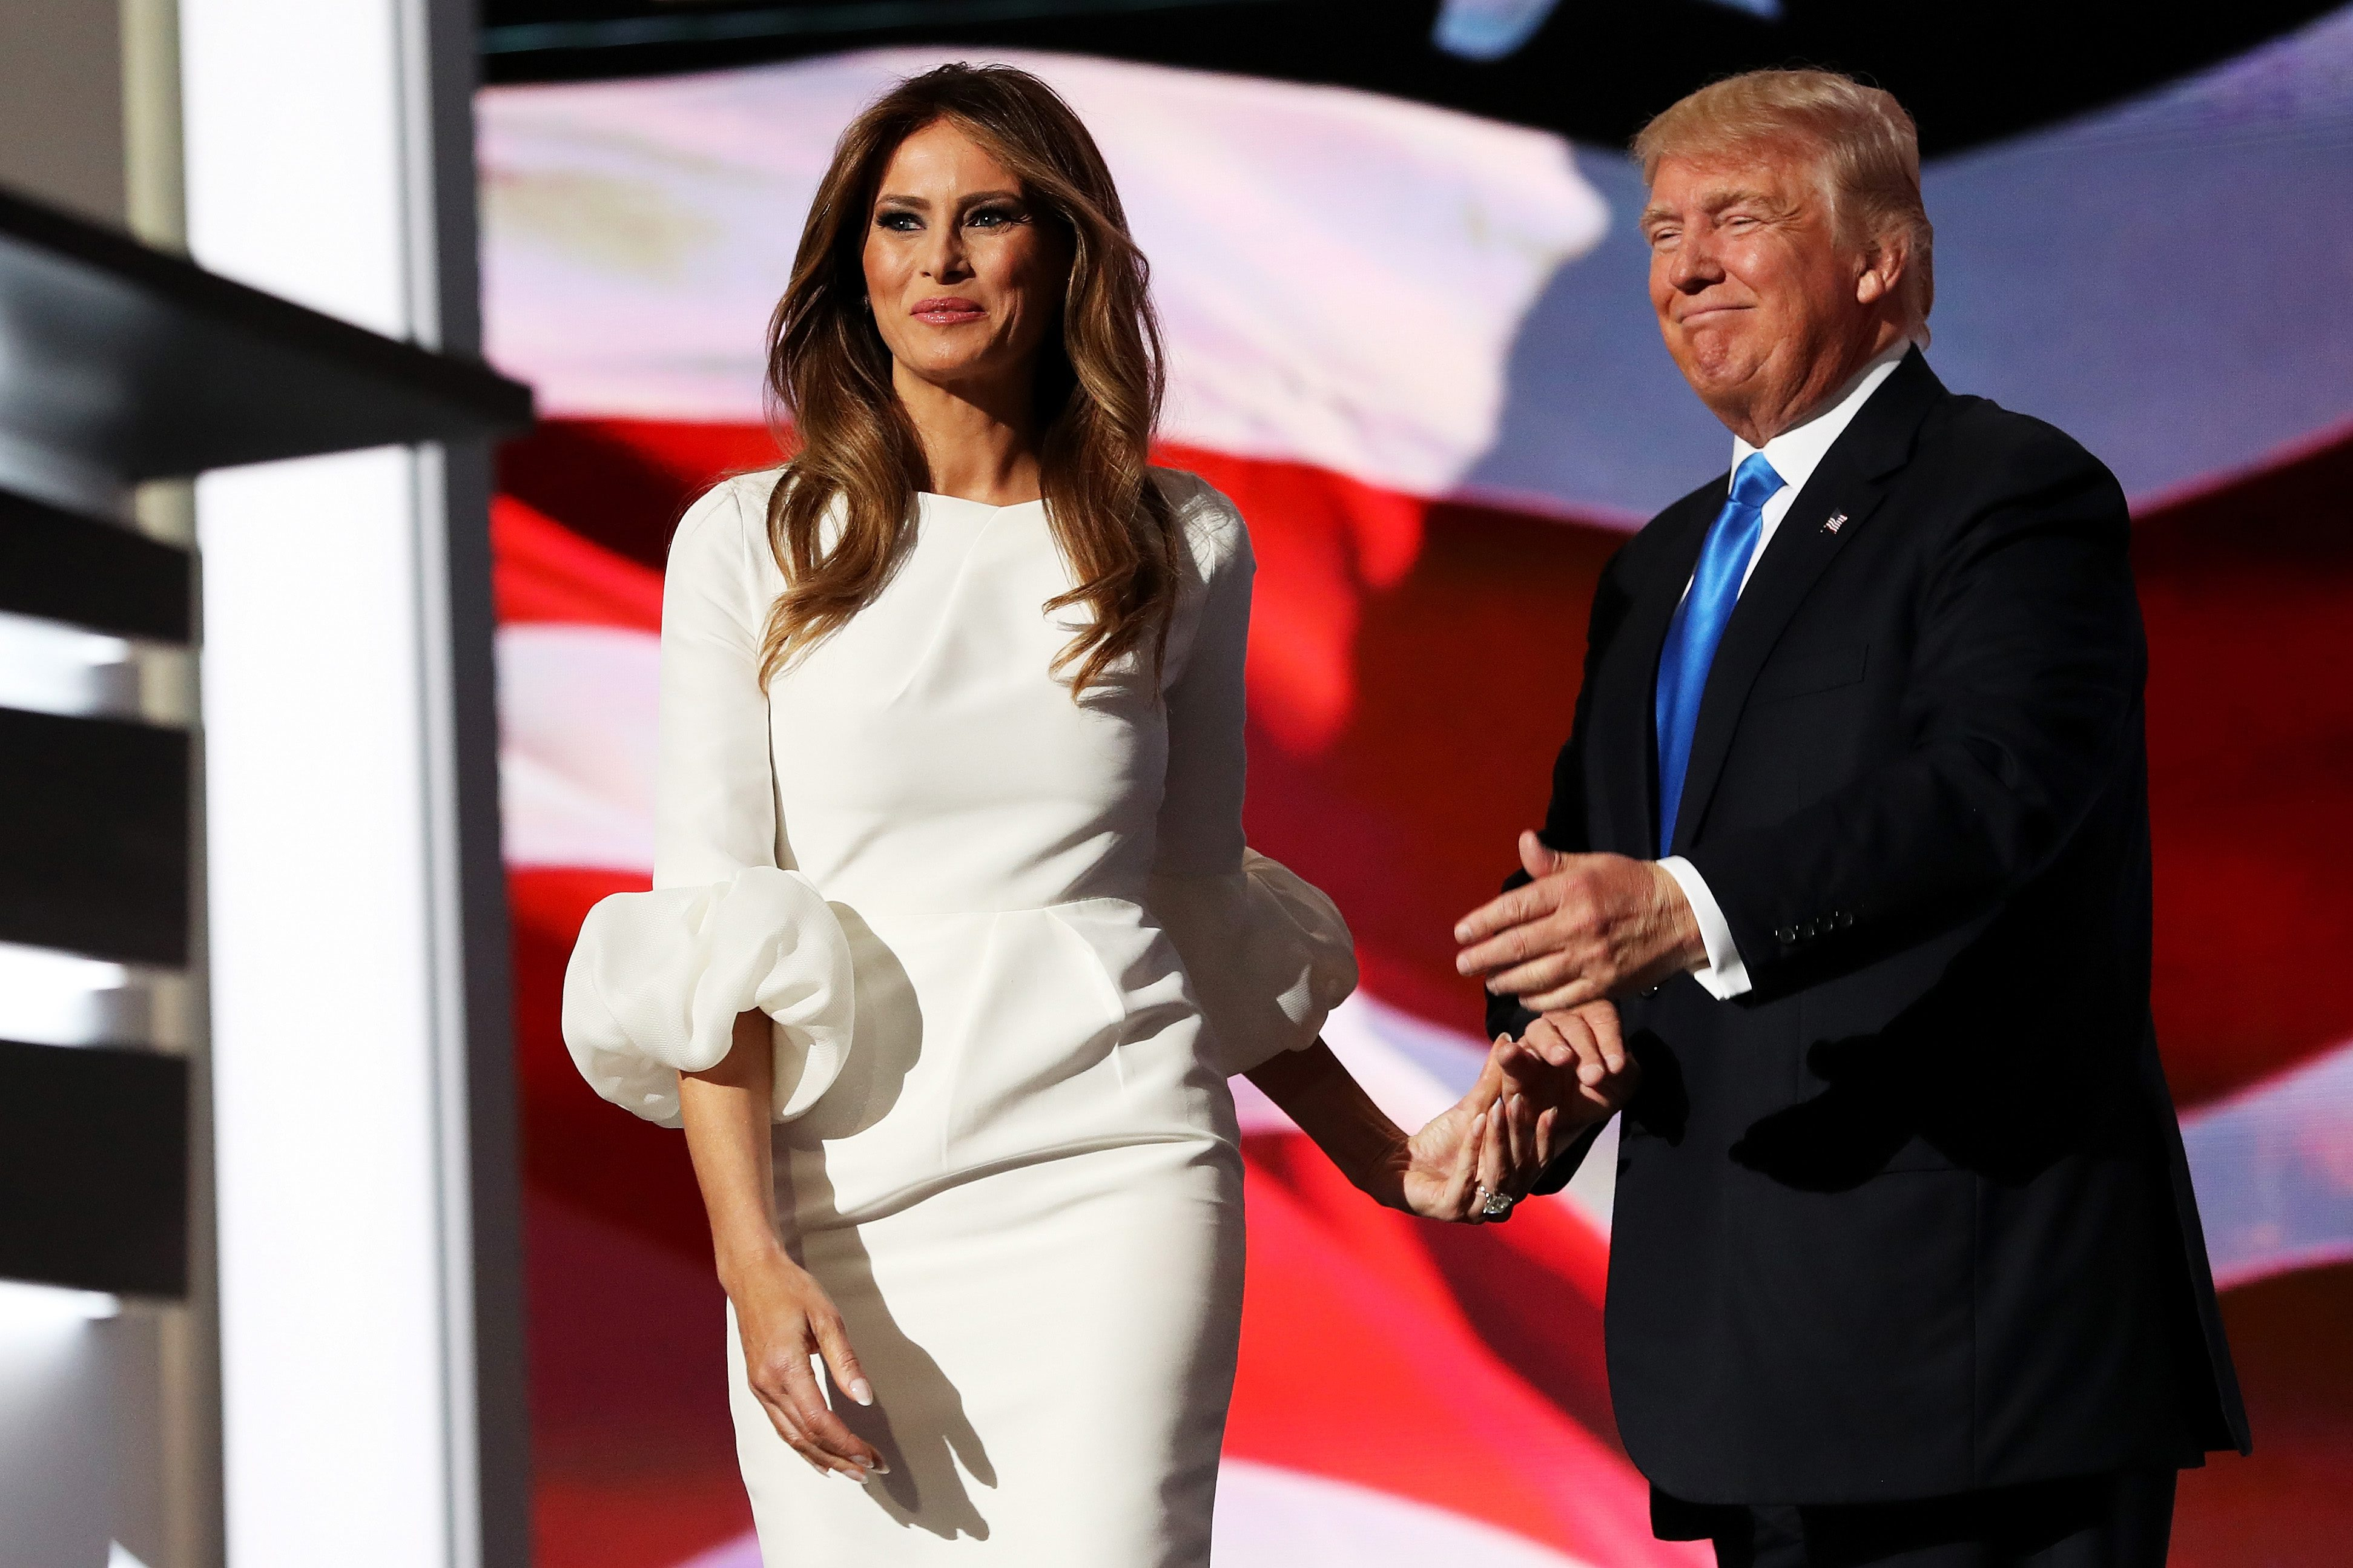 CLEVELAND, OH - JULY 18:  Melania Trump prepares to deliver her speech at RNC Monday.  (Photo by Joe Raedle/Getty Images)